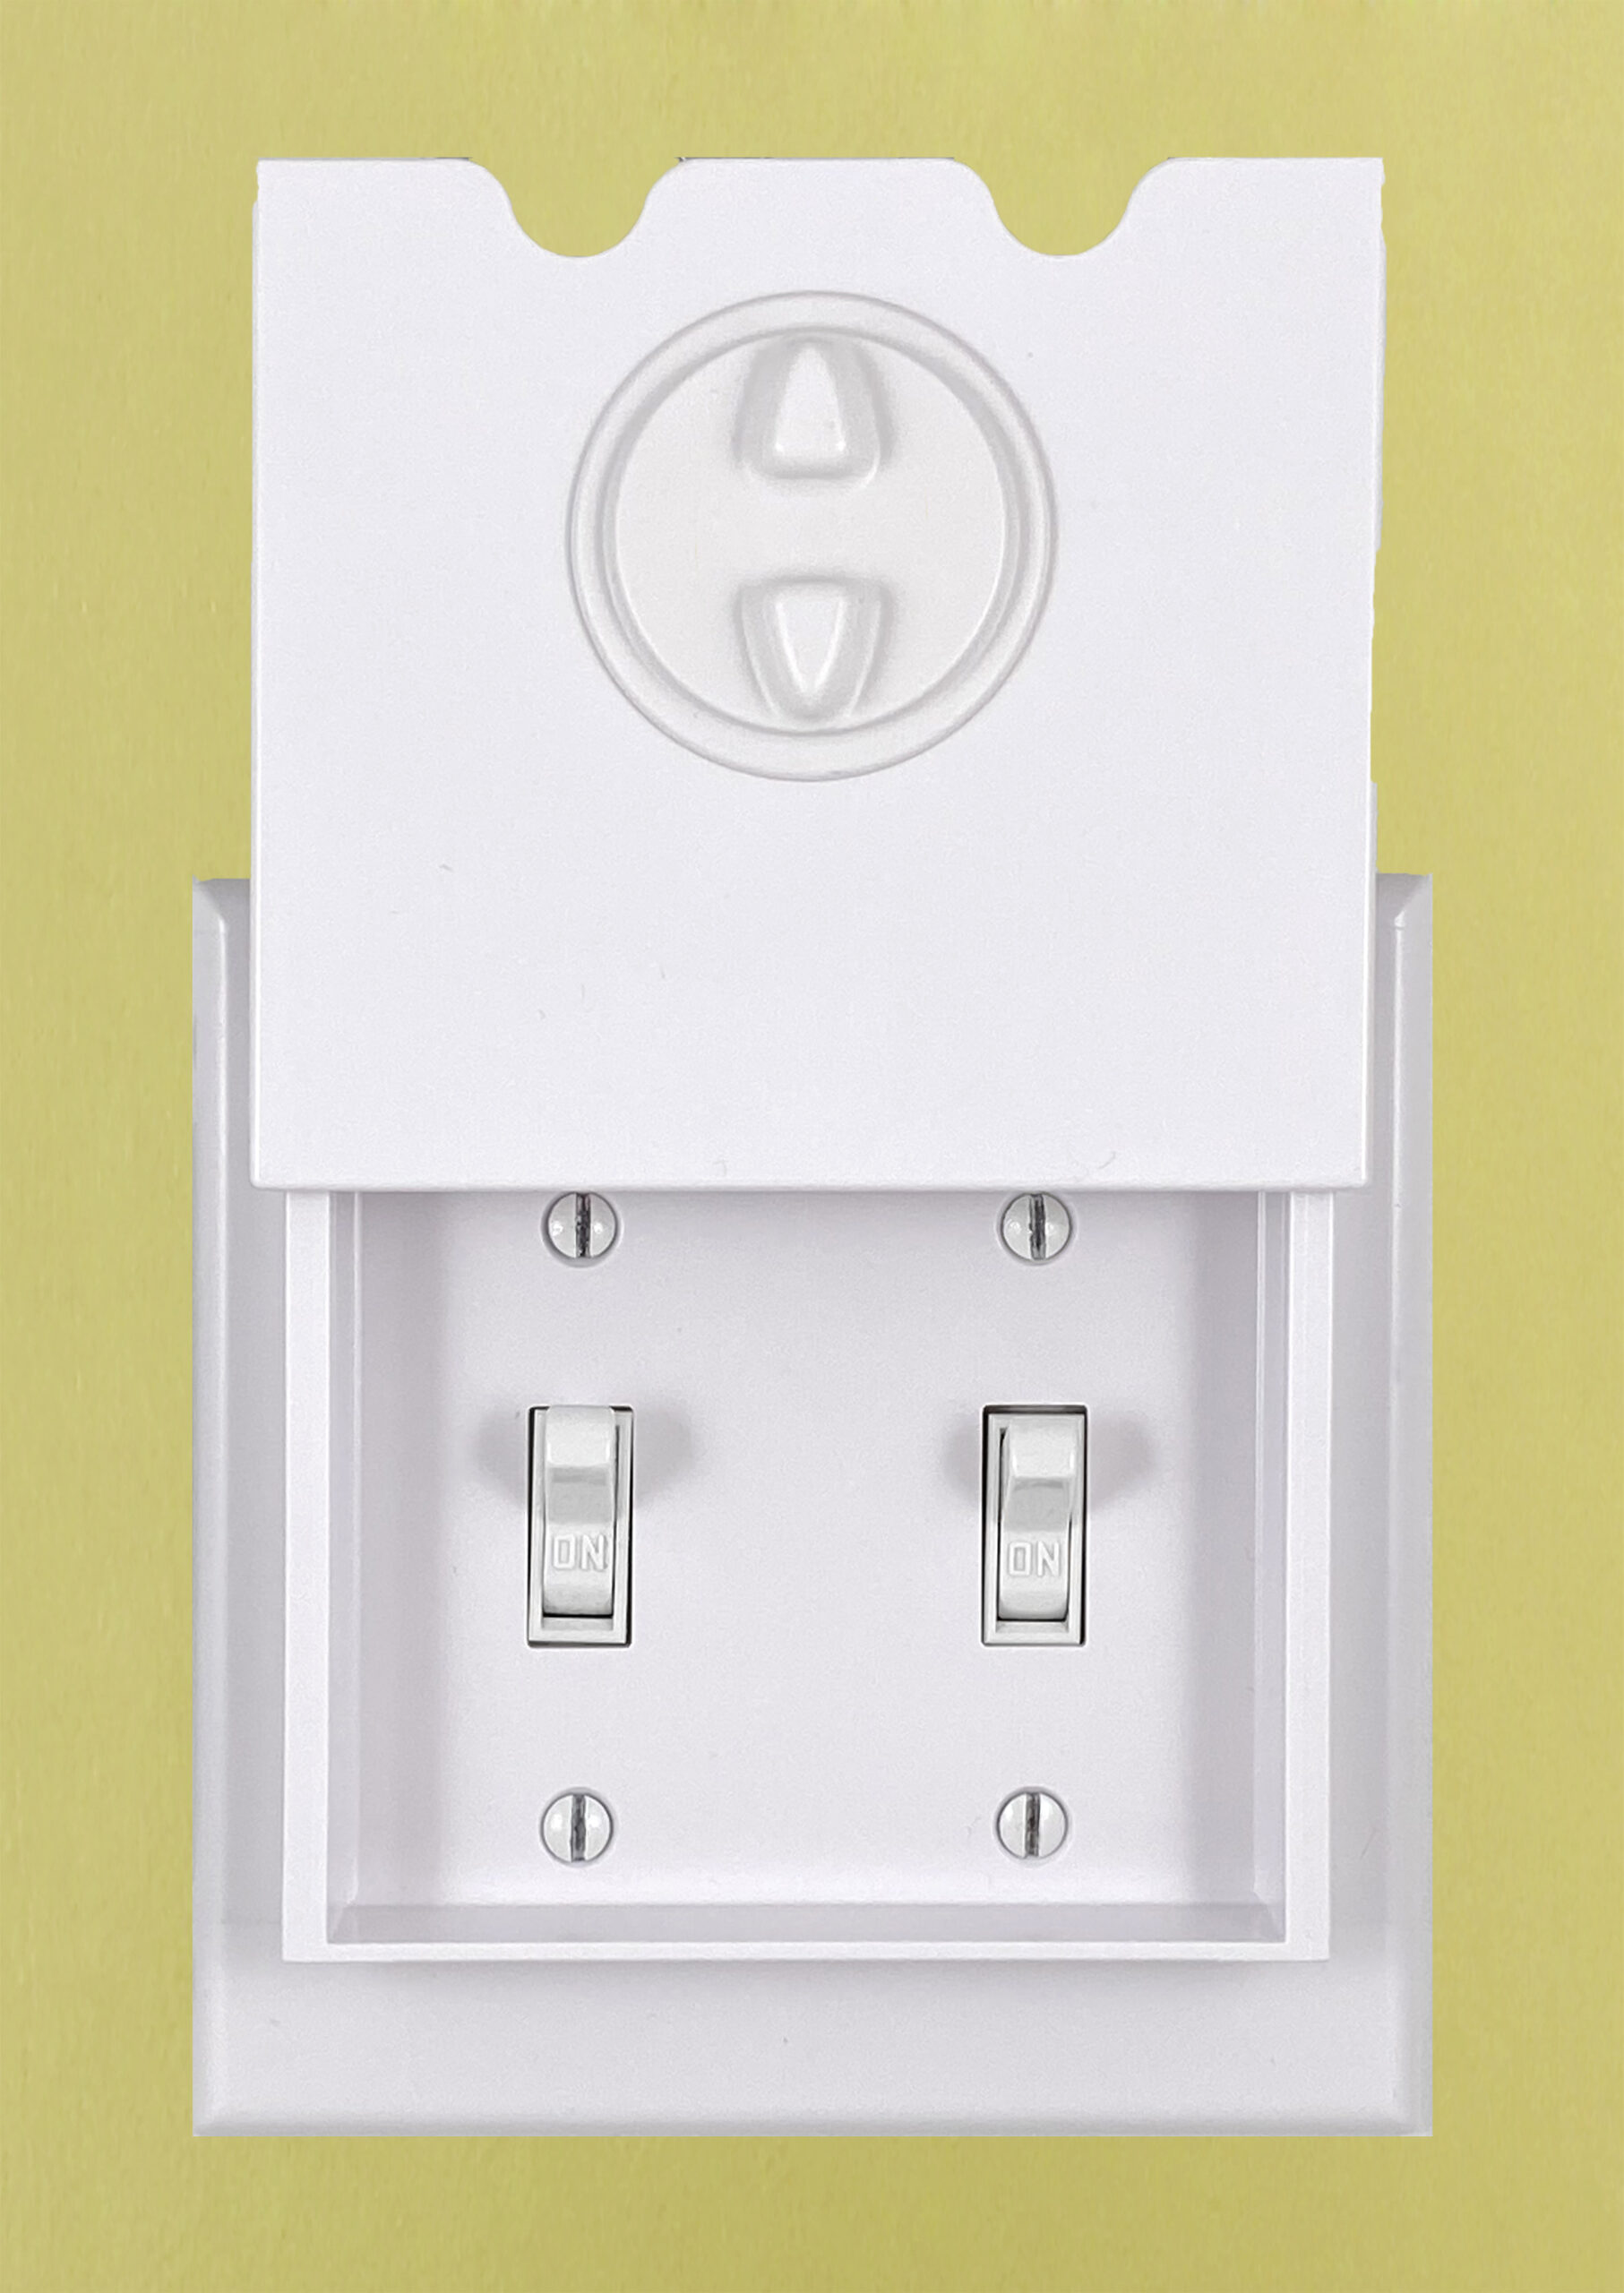 HomeStar Safety Light Switch Guard for Double Toggle Switches